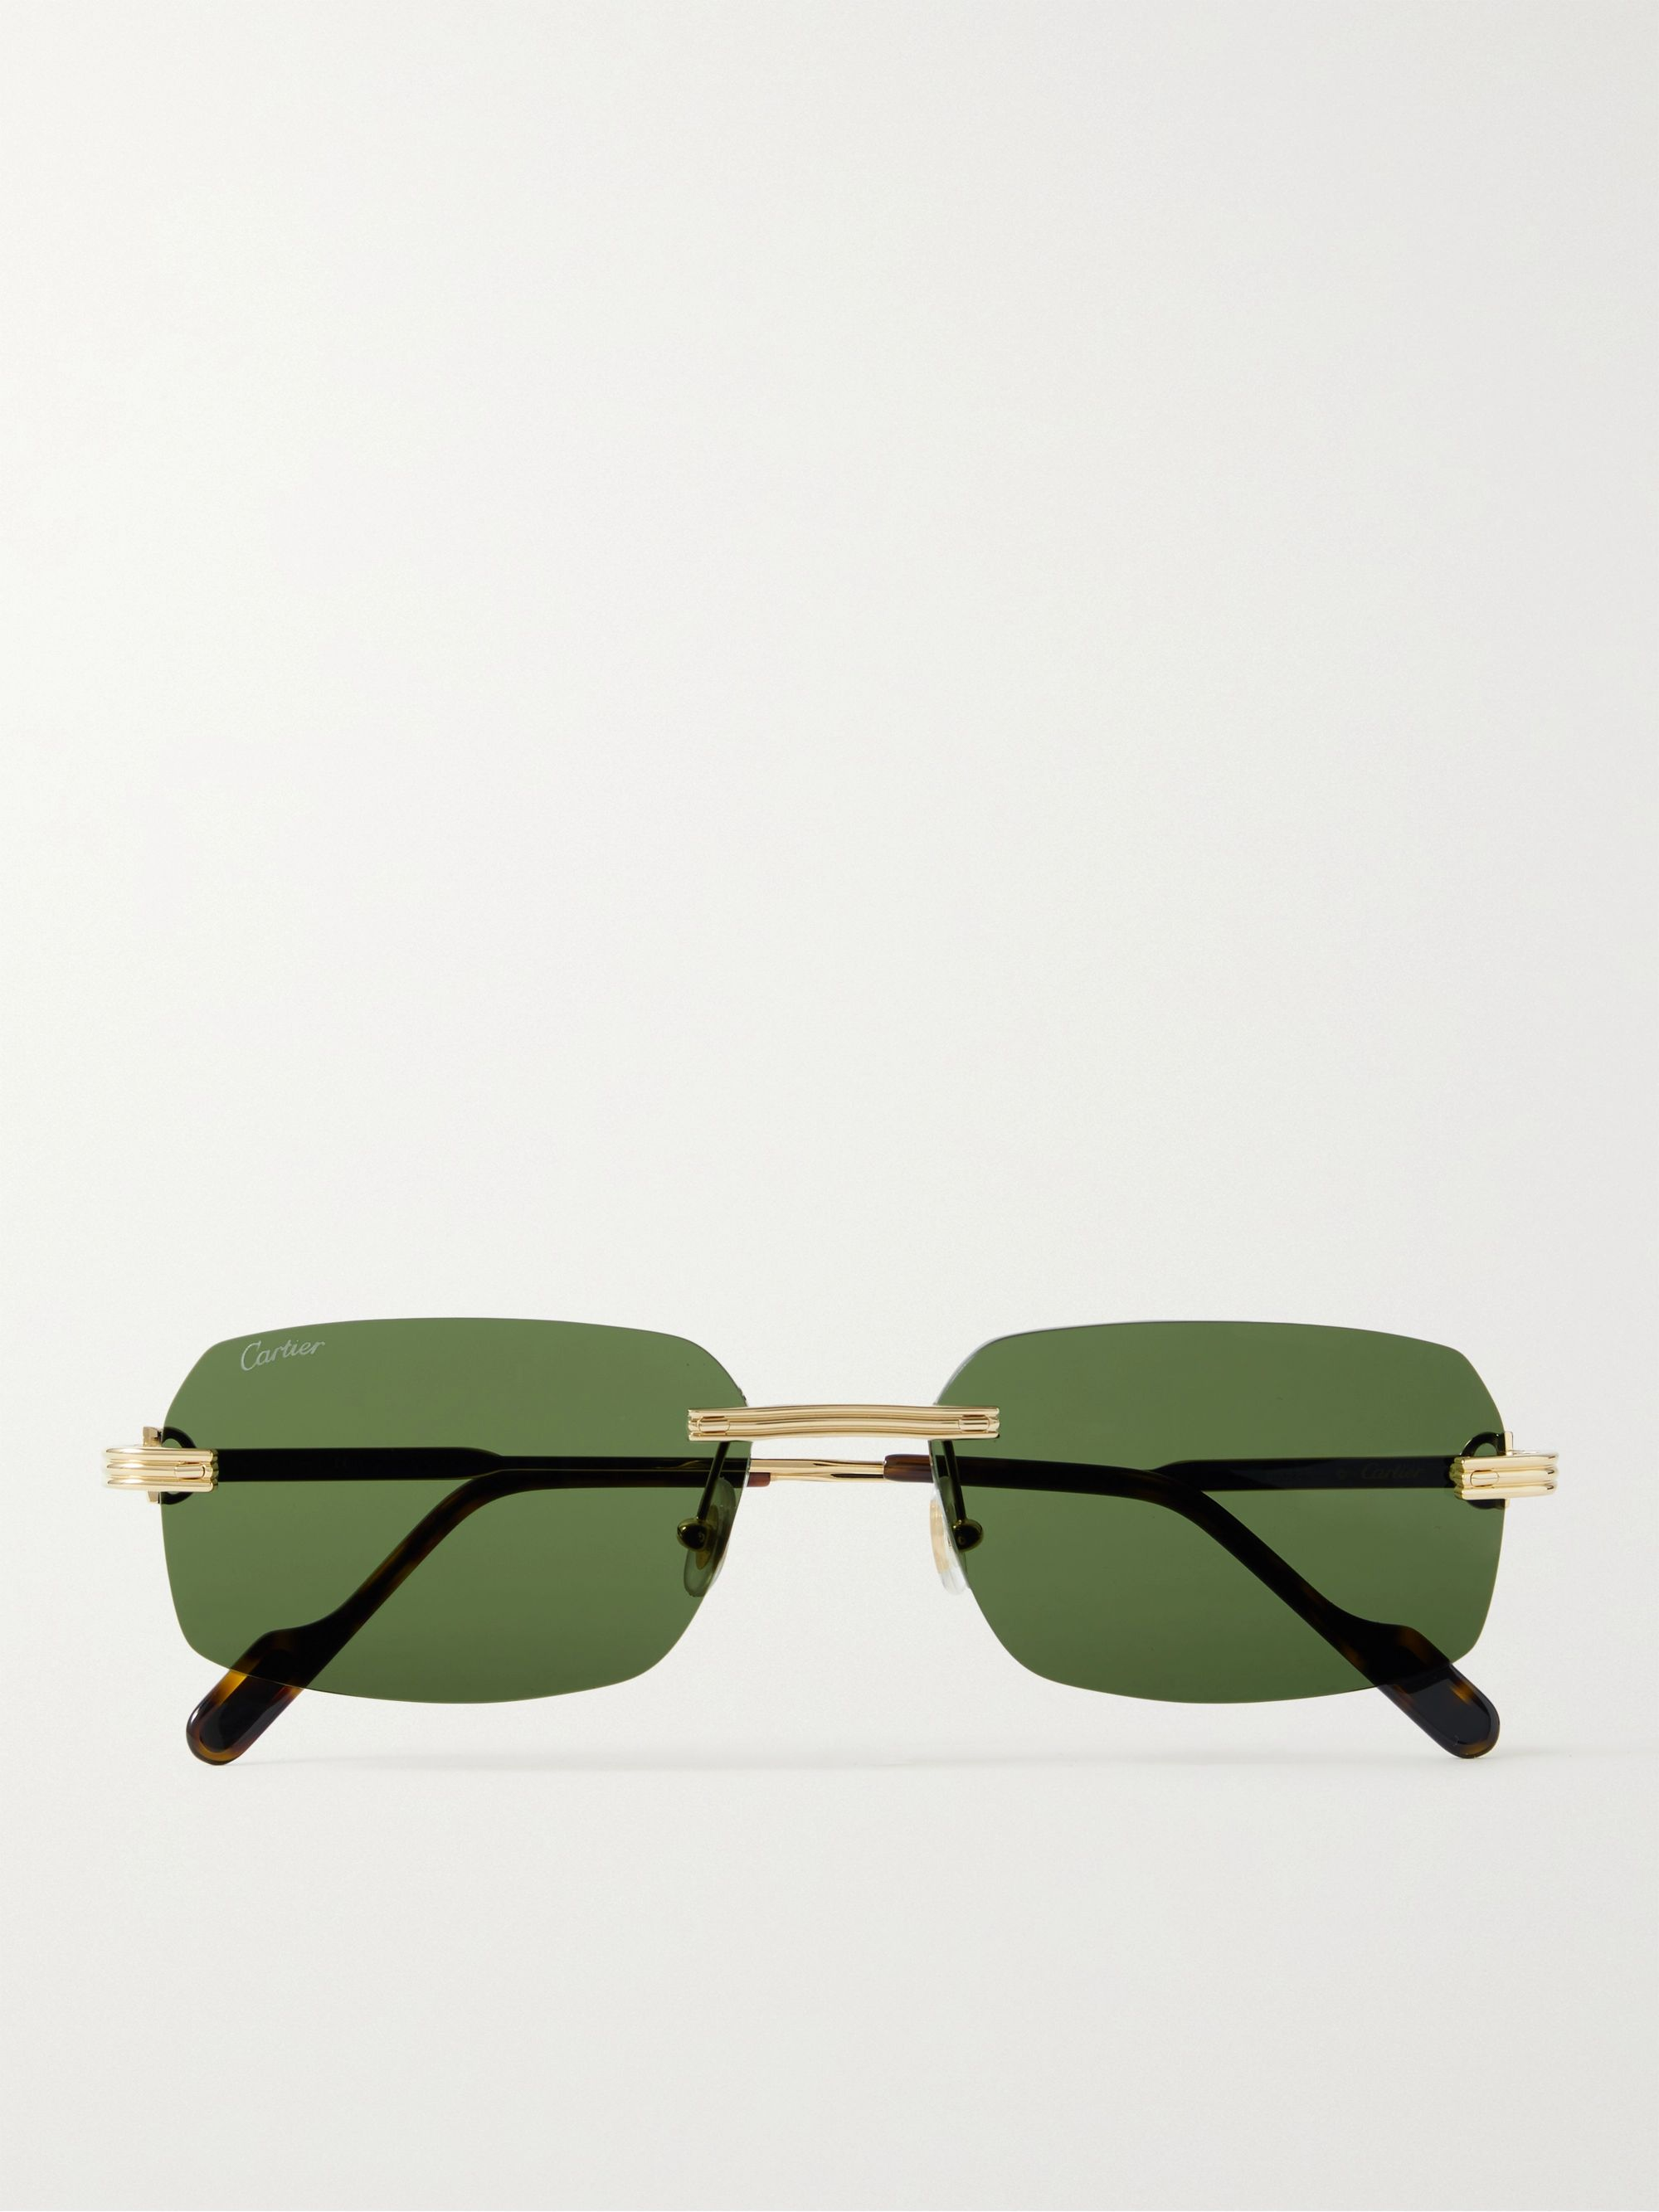 CARTIER EYEWEAR Rimless Rectangular-Frame Gold-Tone Sunglasses